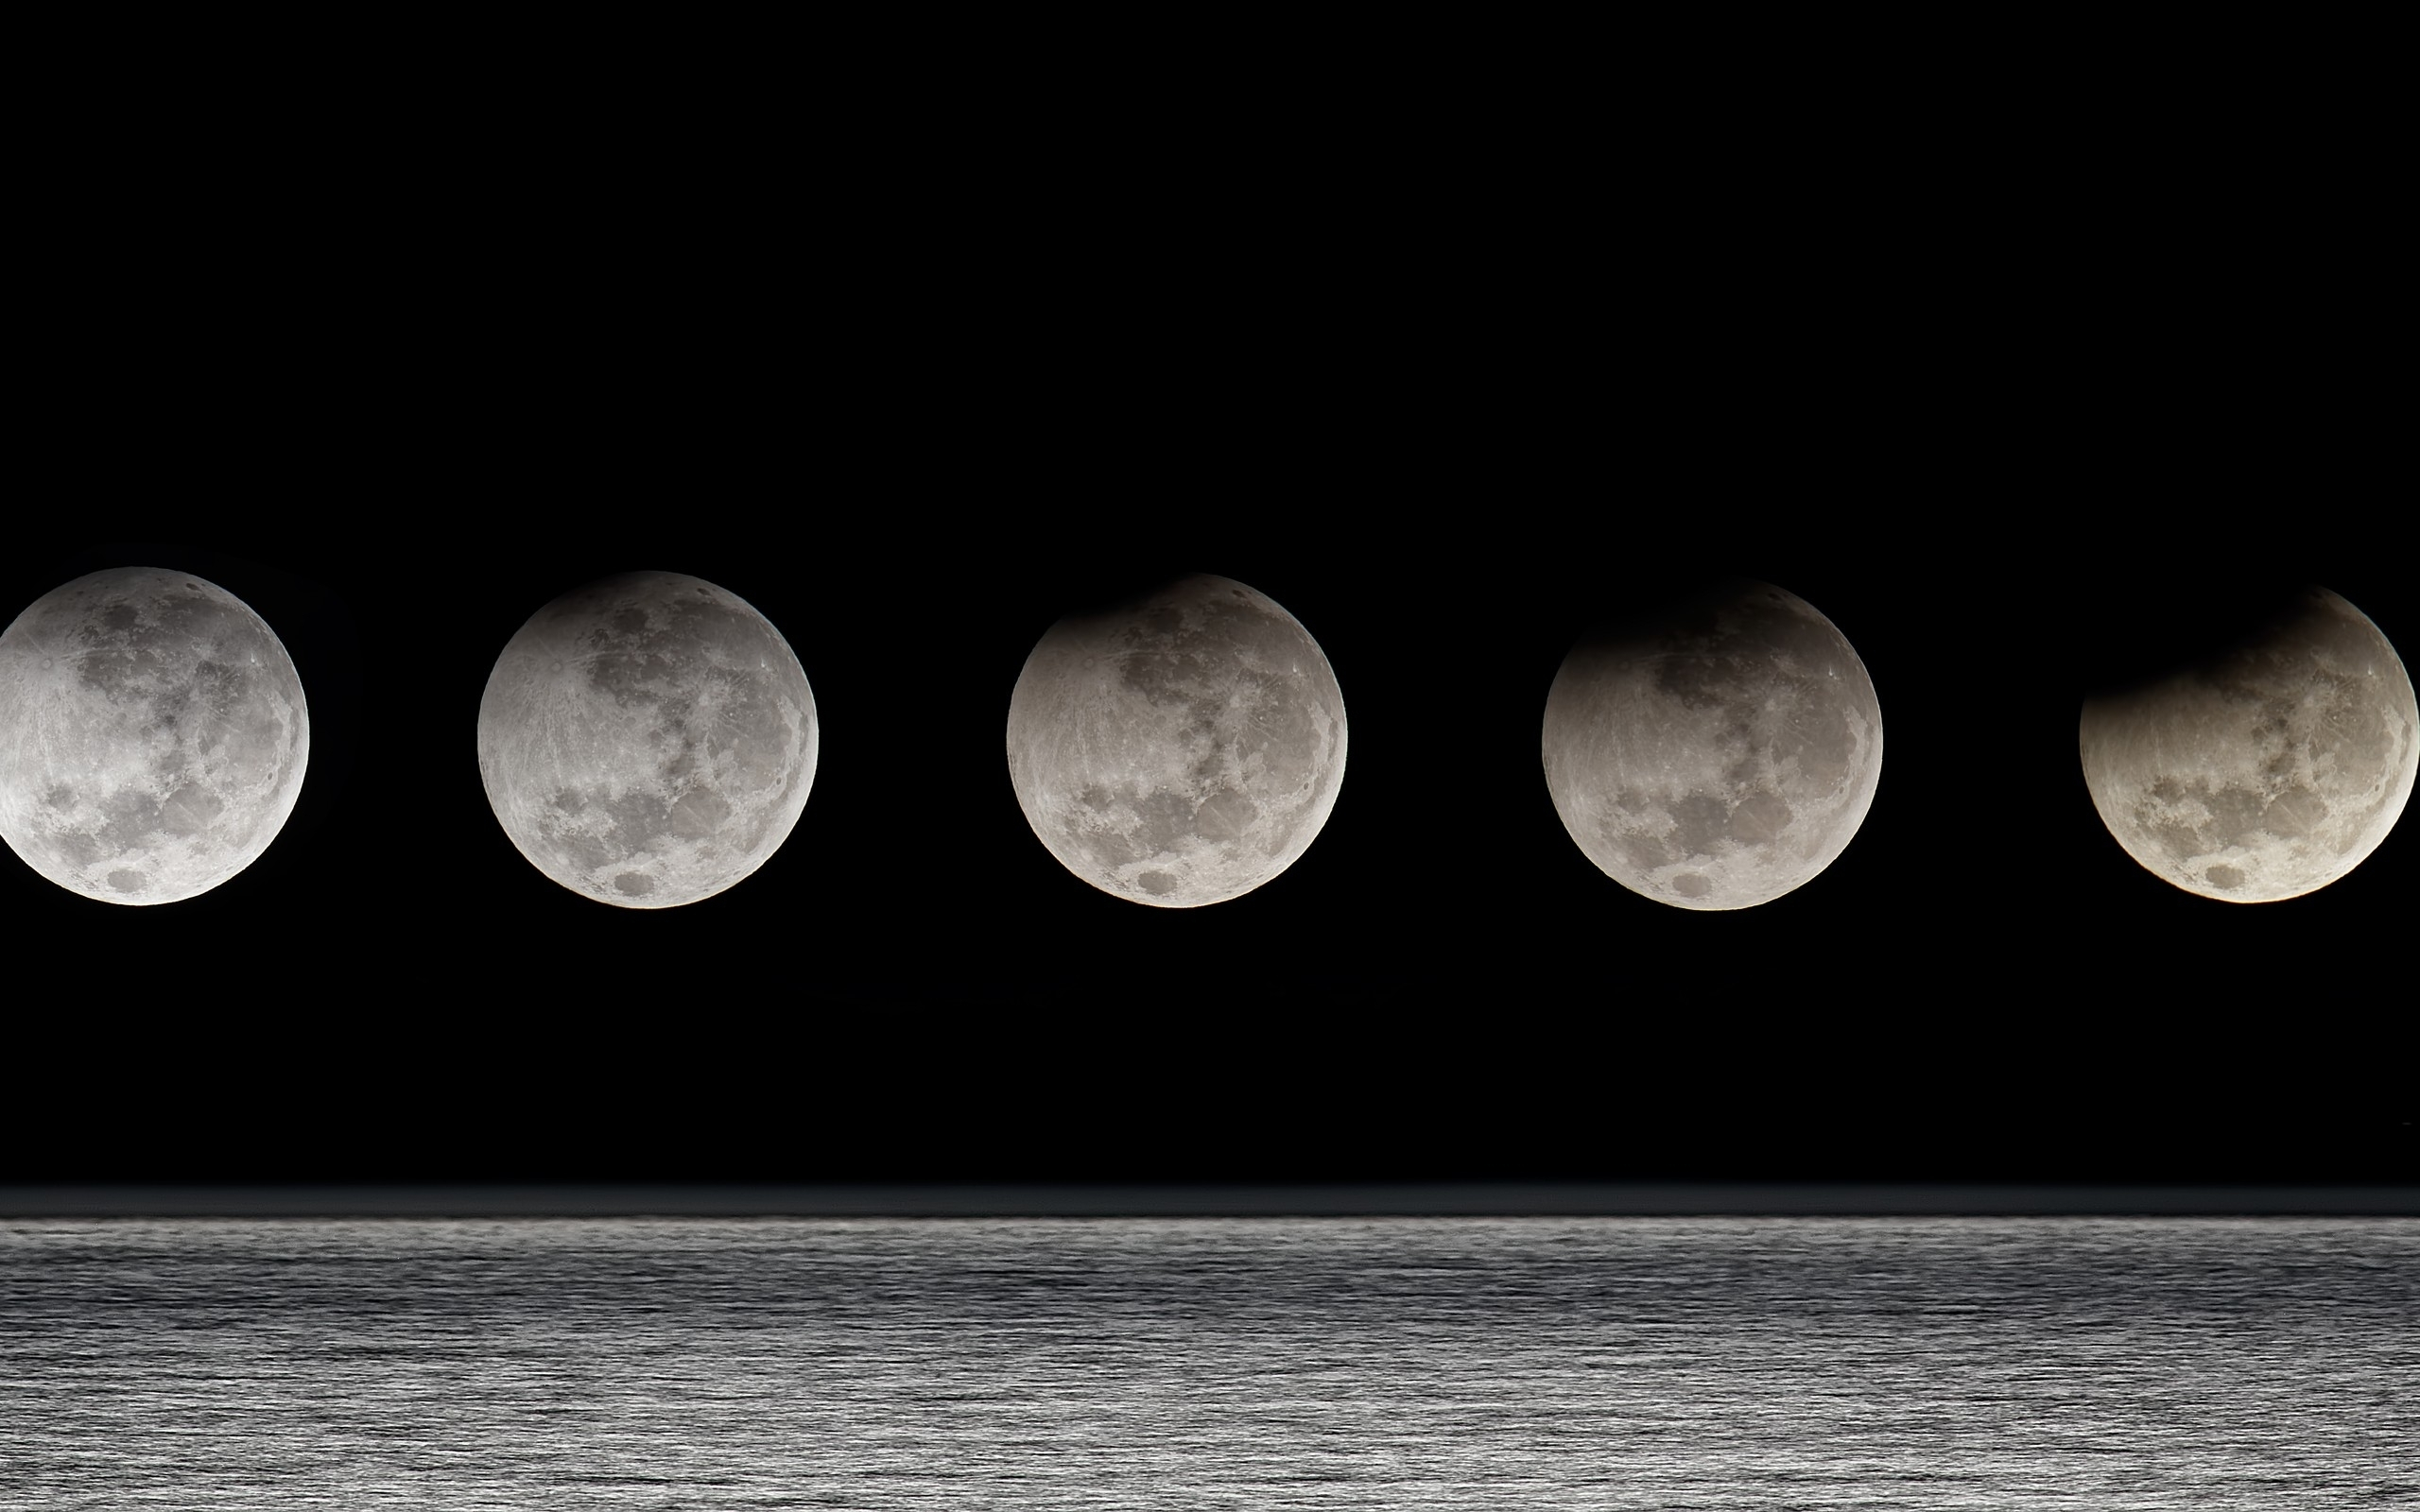 Moon eclipse moon phases HD Wallpapers 2560x1600